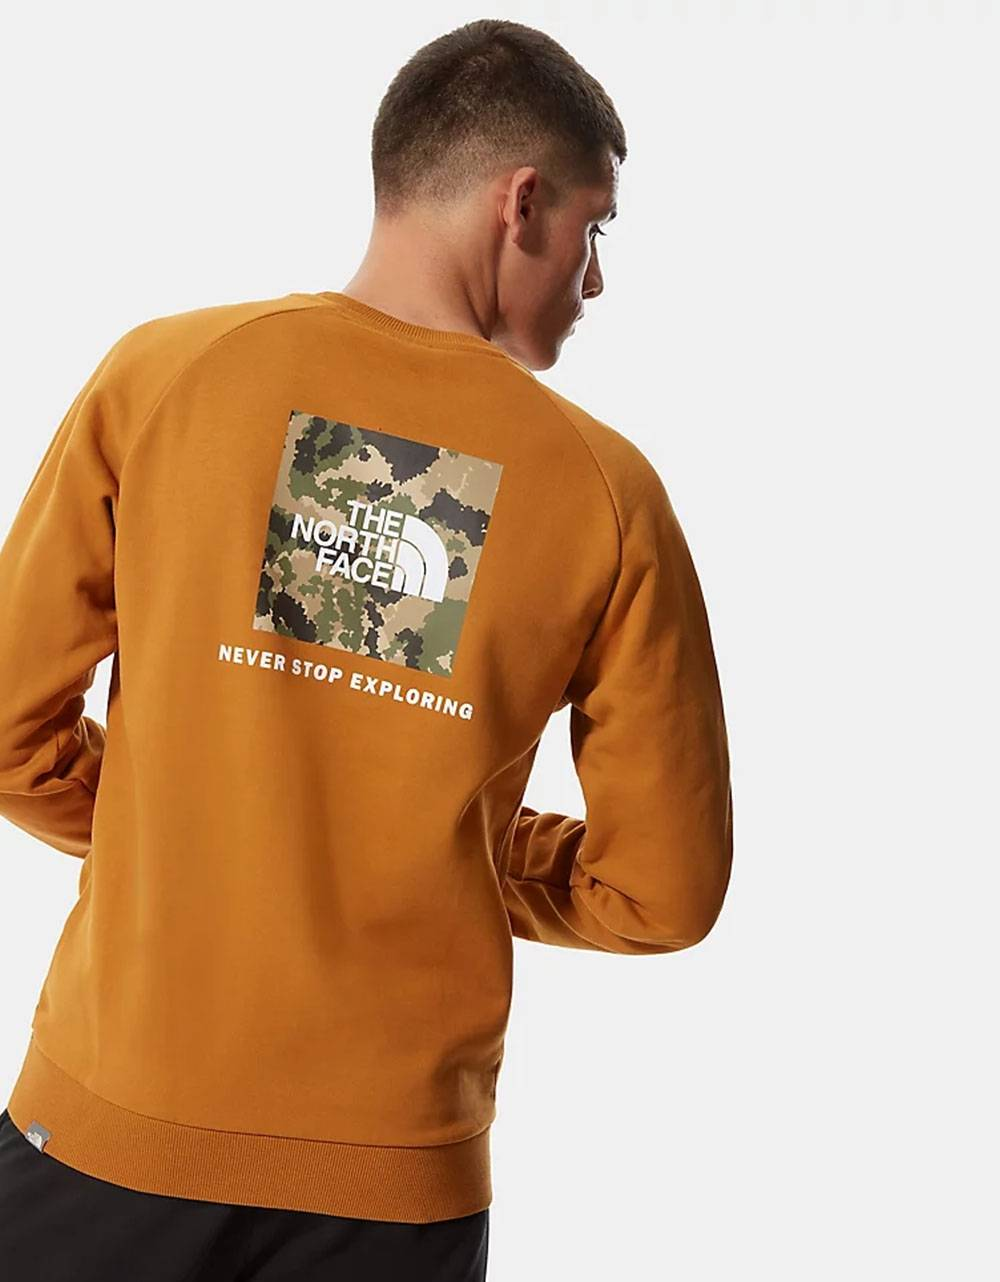 The North Face raglan red box new crewneck sweater - Timber tan/ burnt olive digi camo THE NORTH FACE Sweater 85,00€